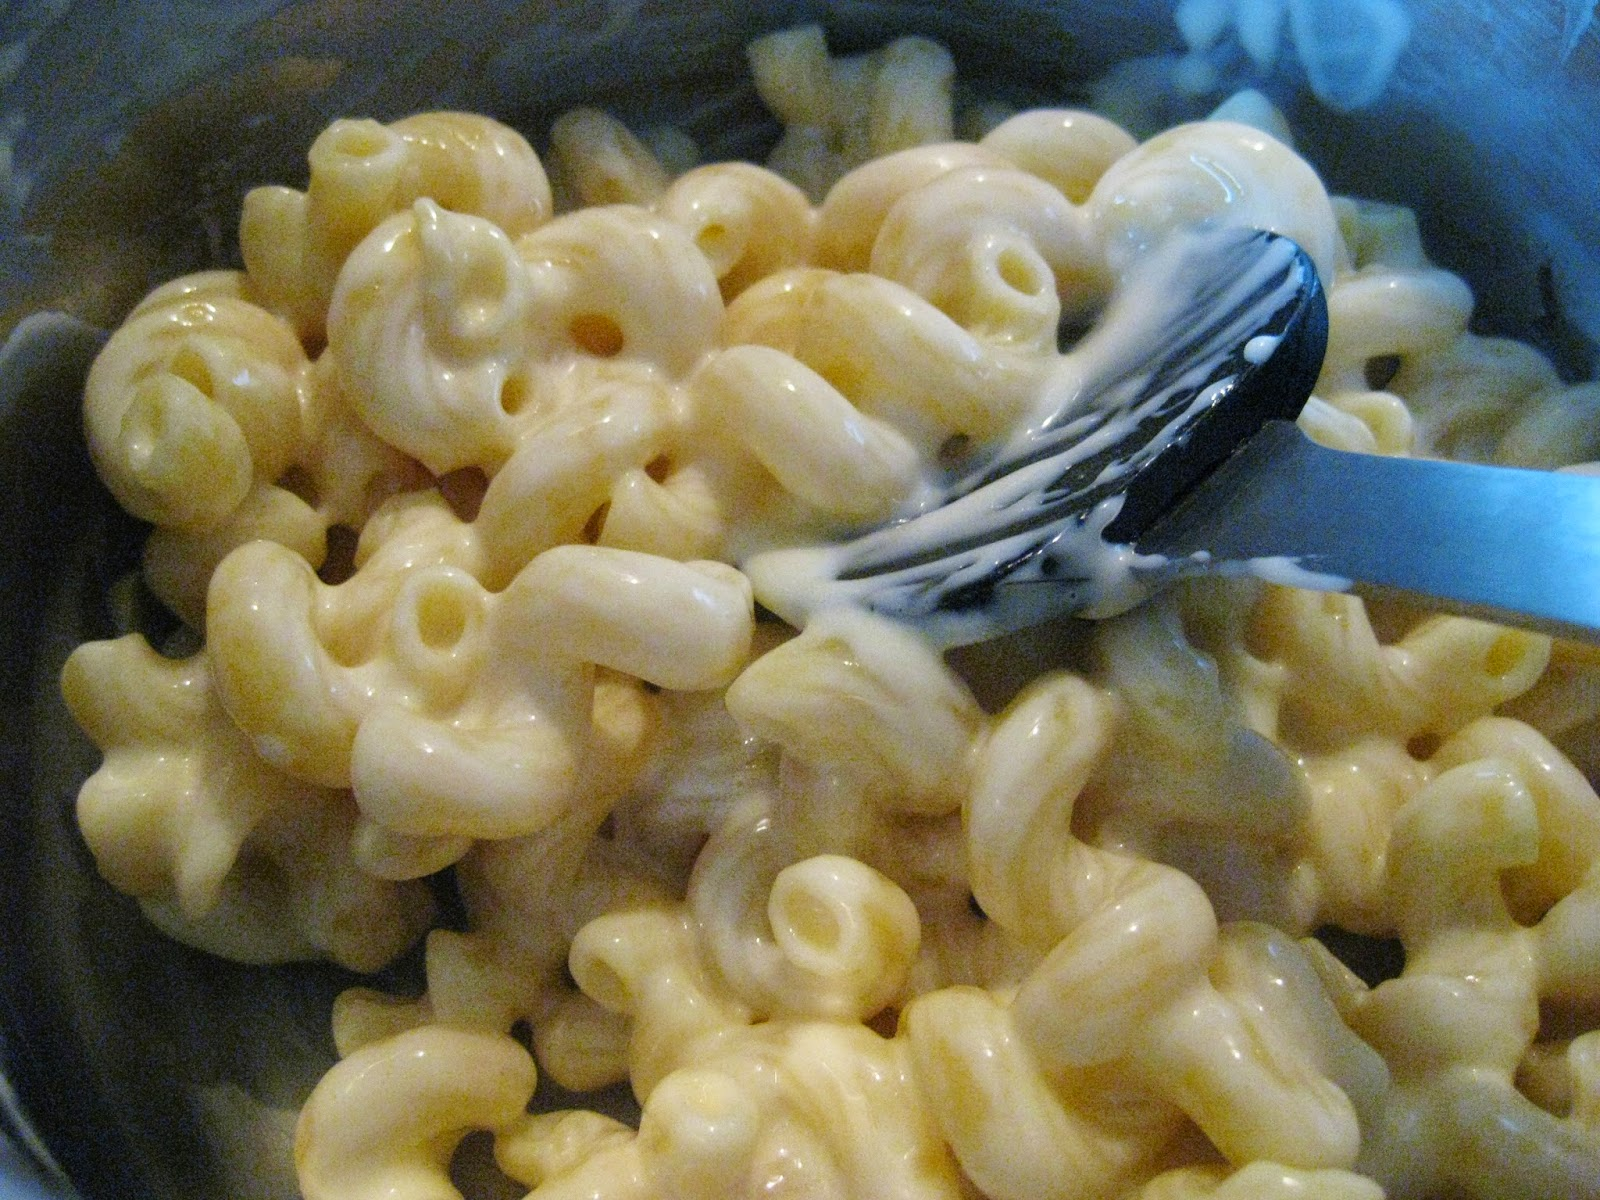 Imitation Kraft Macaroni & Cheese Recipe